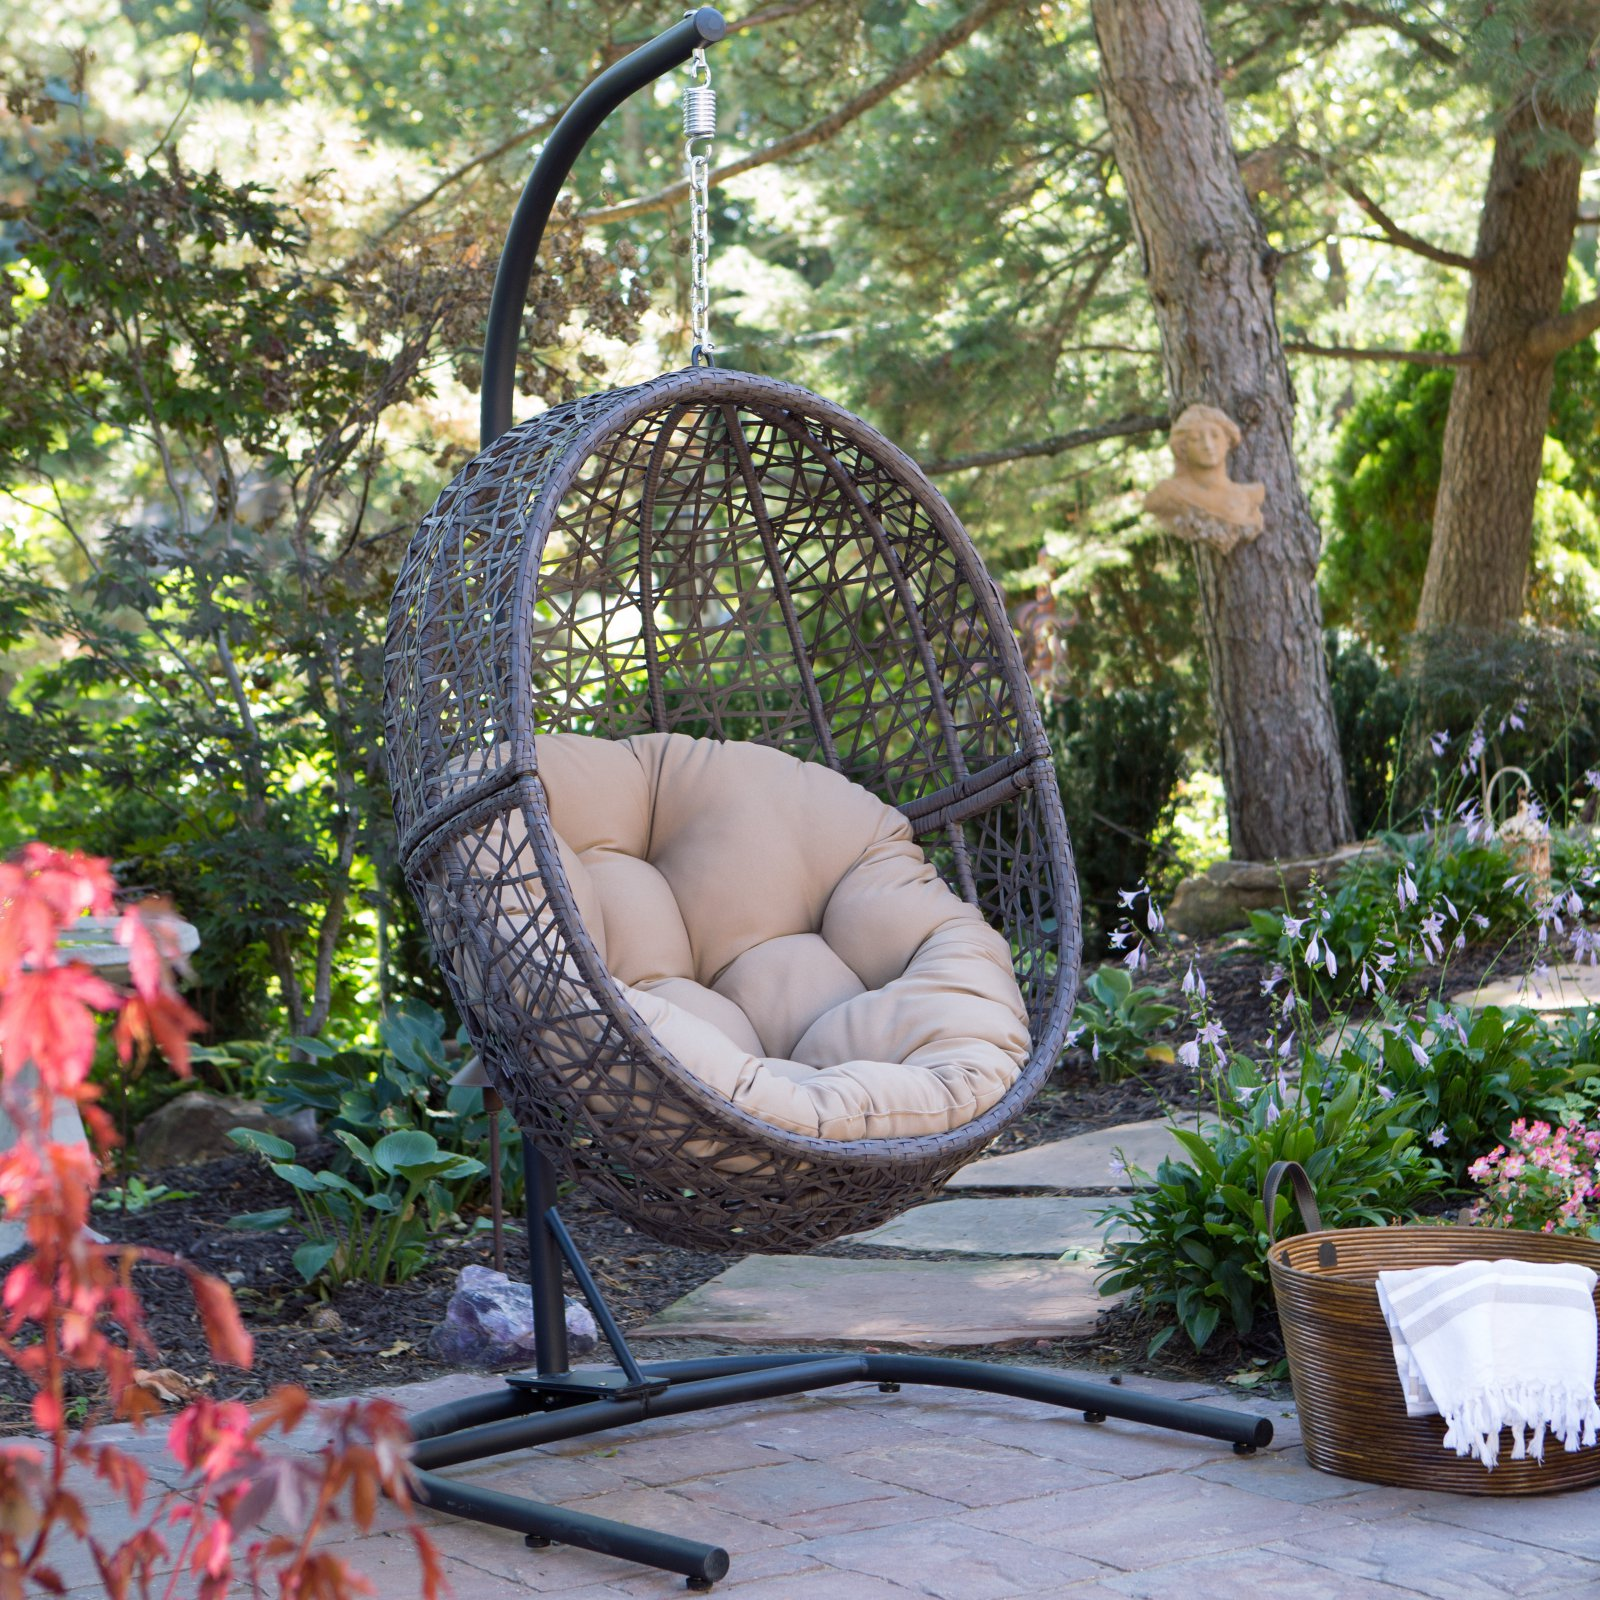 Merveilleux Product Image Island Bay Resin Wicker Hanging Egg Chair With Cushion And  Stand